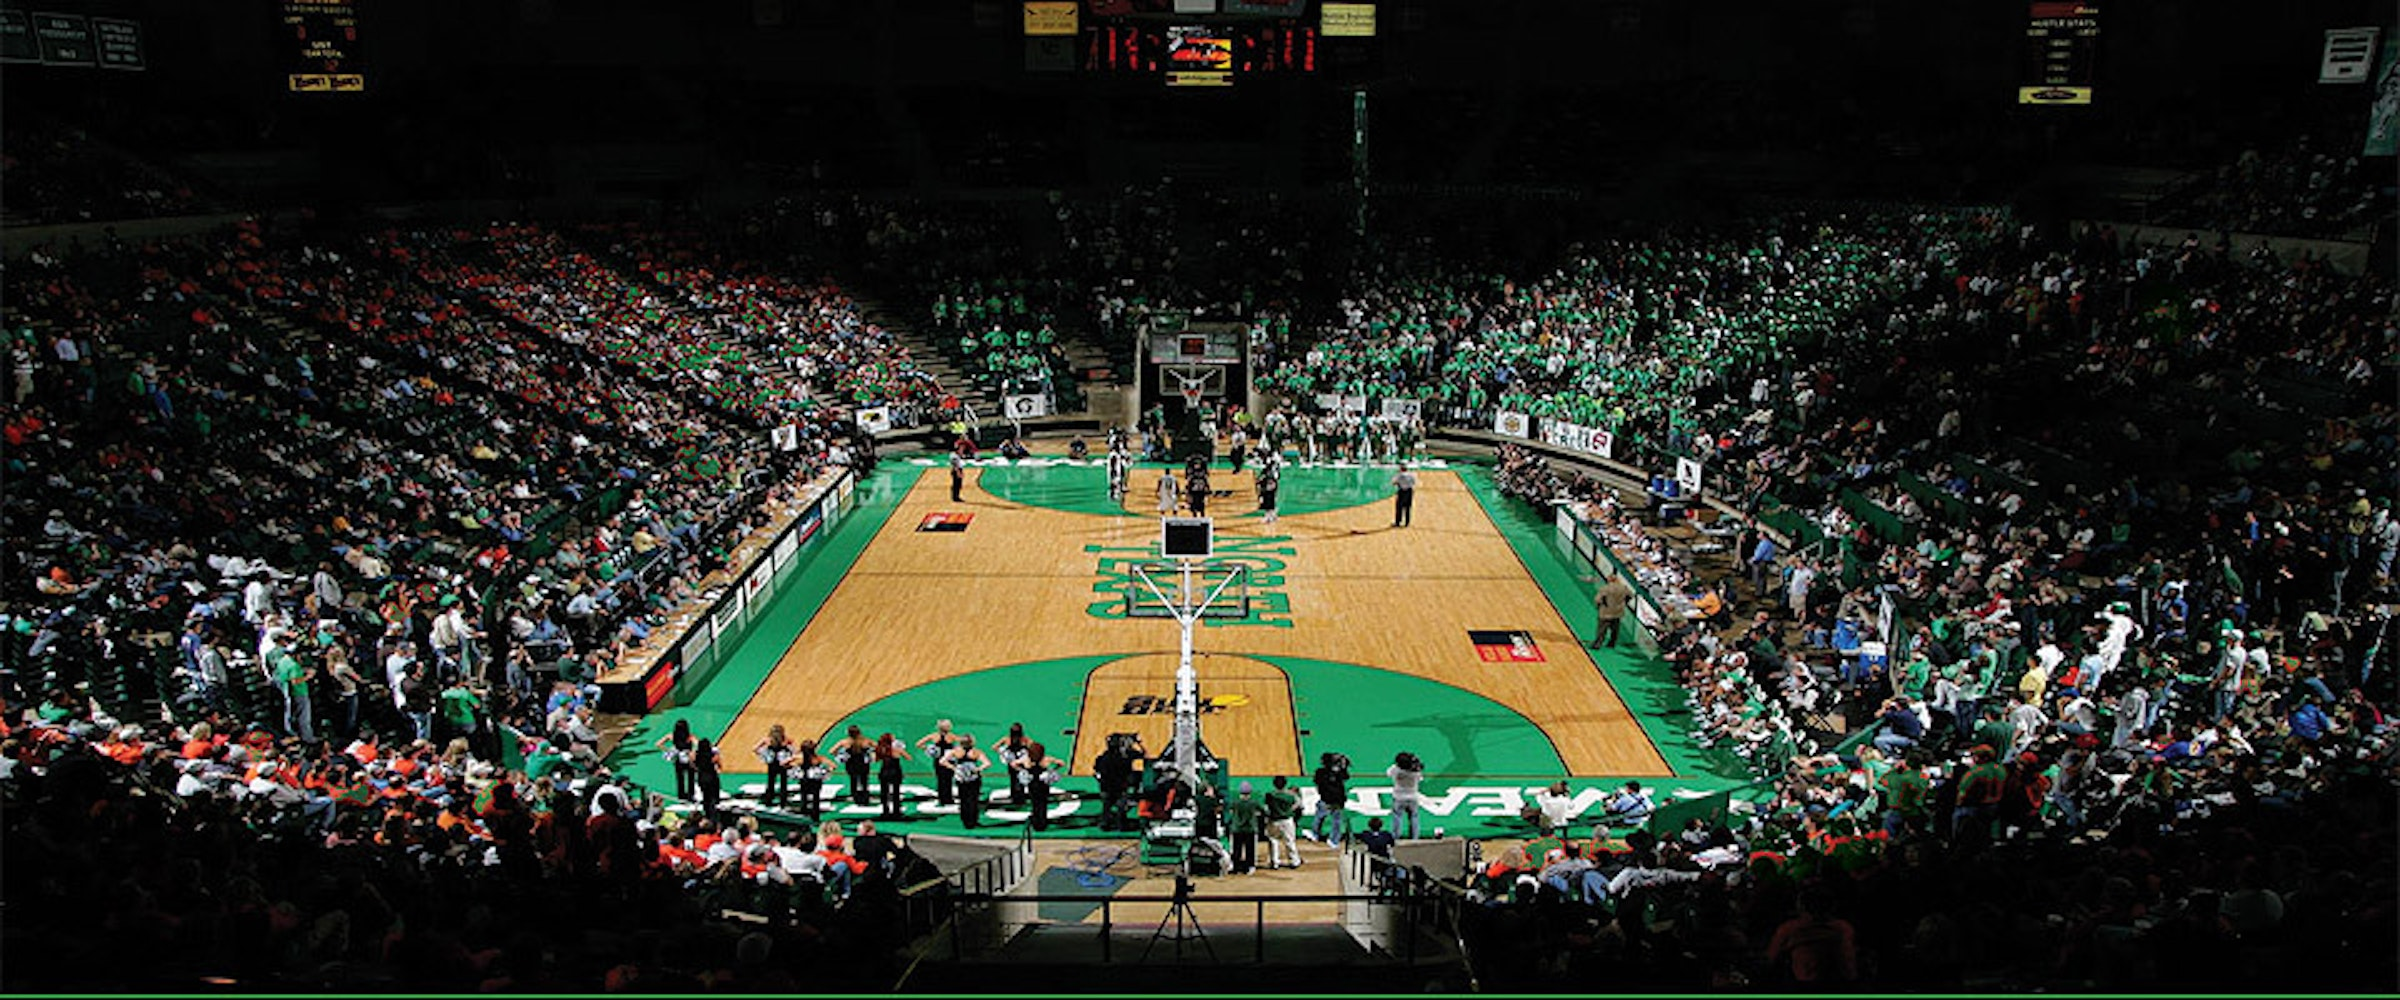 UNT - North Texas Coliseum